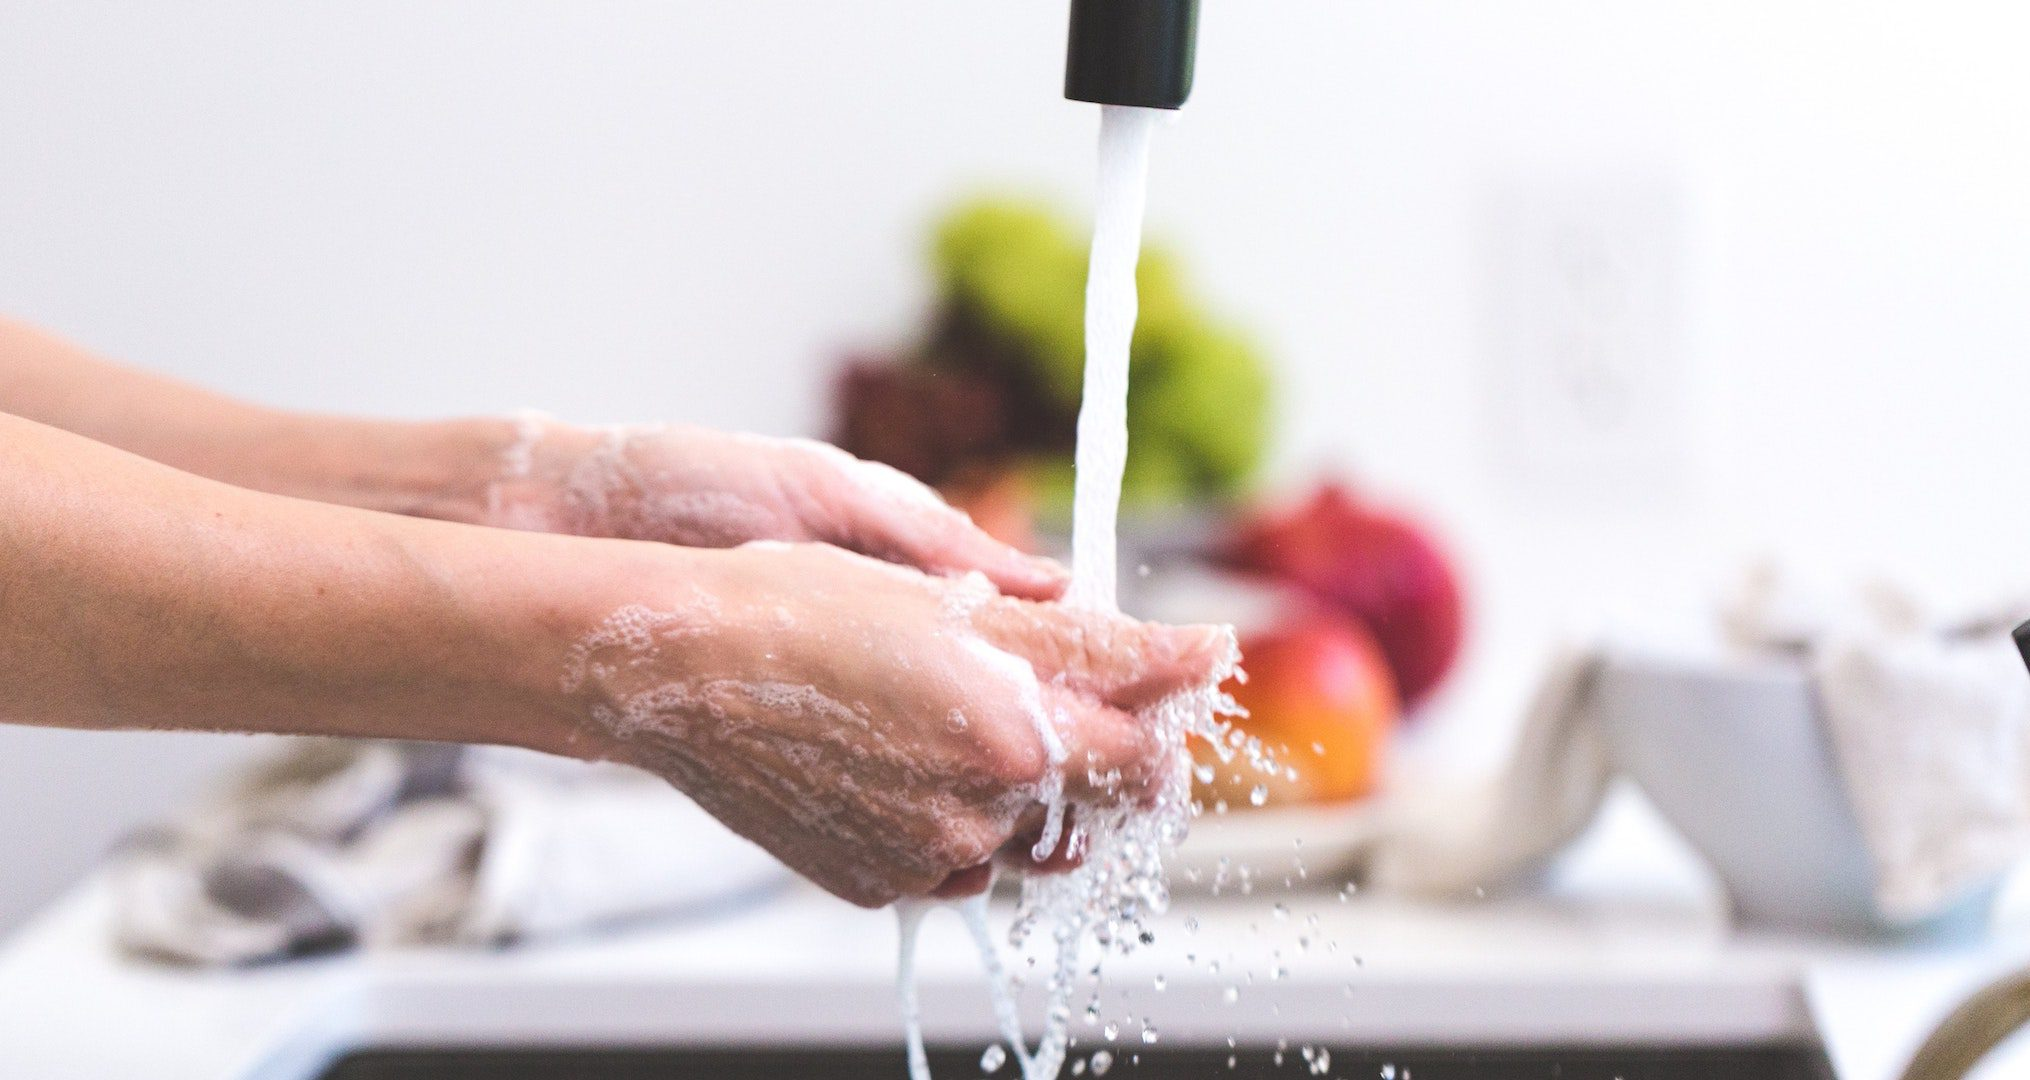 woman washing her hands at the kitchen sink with food in the background